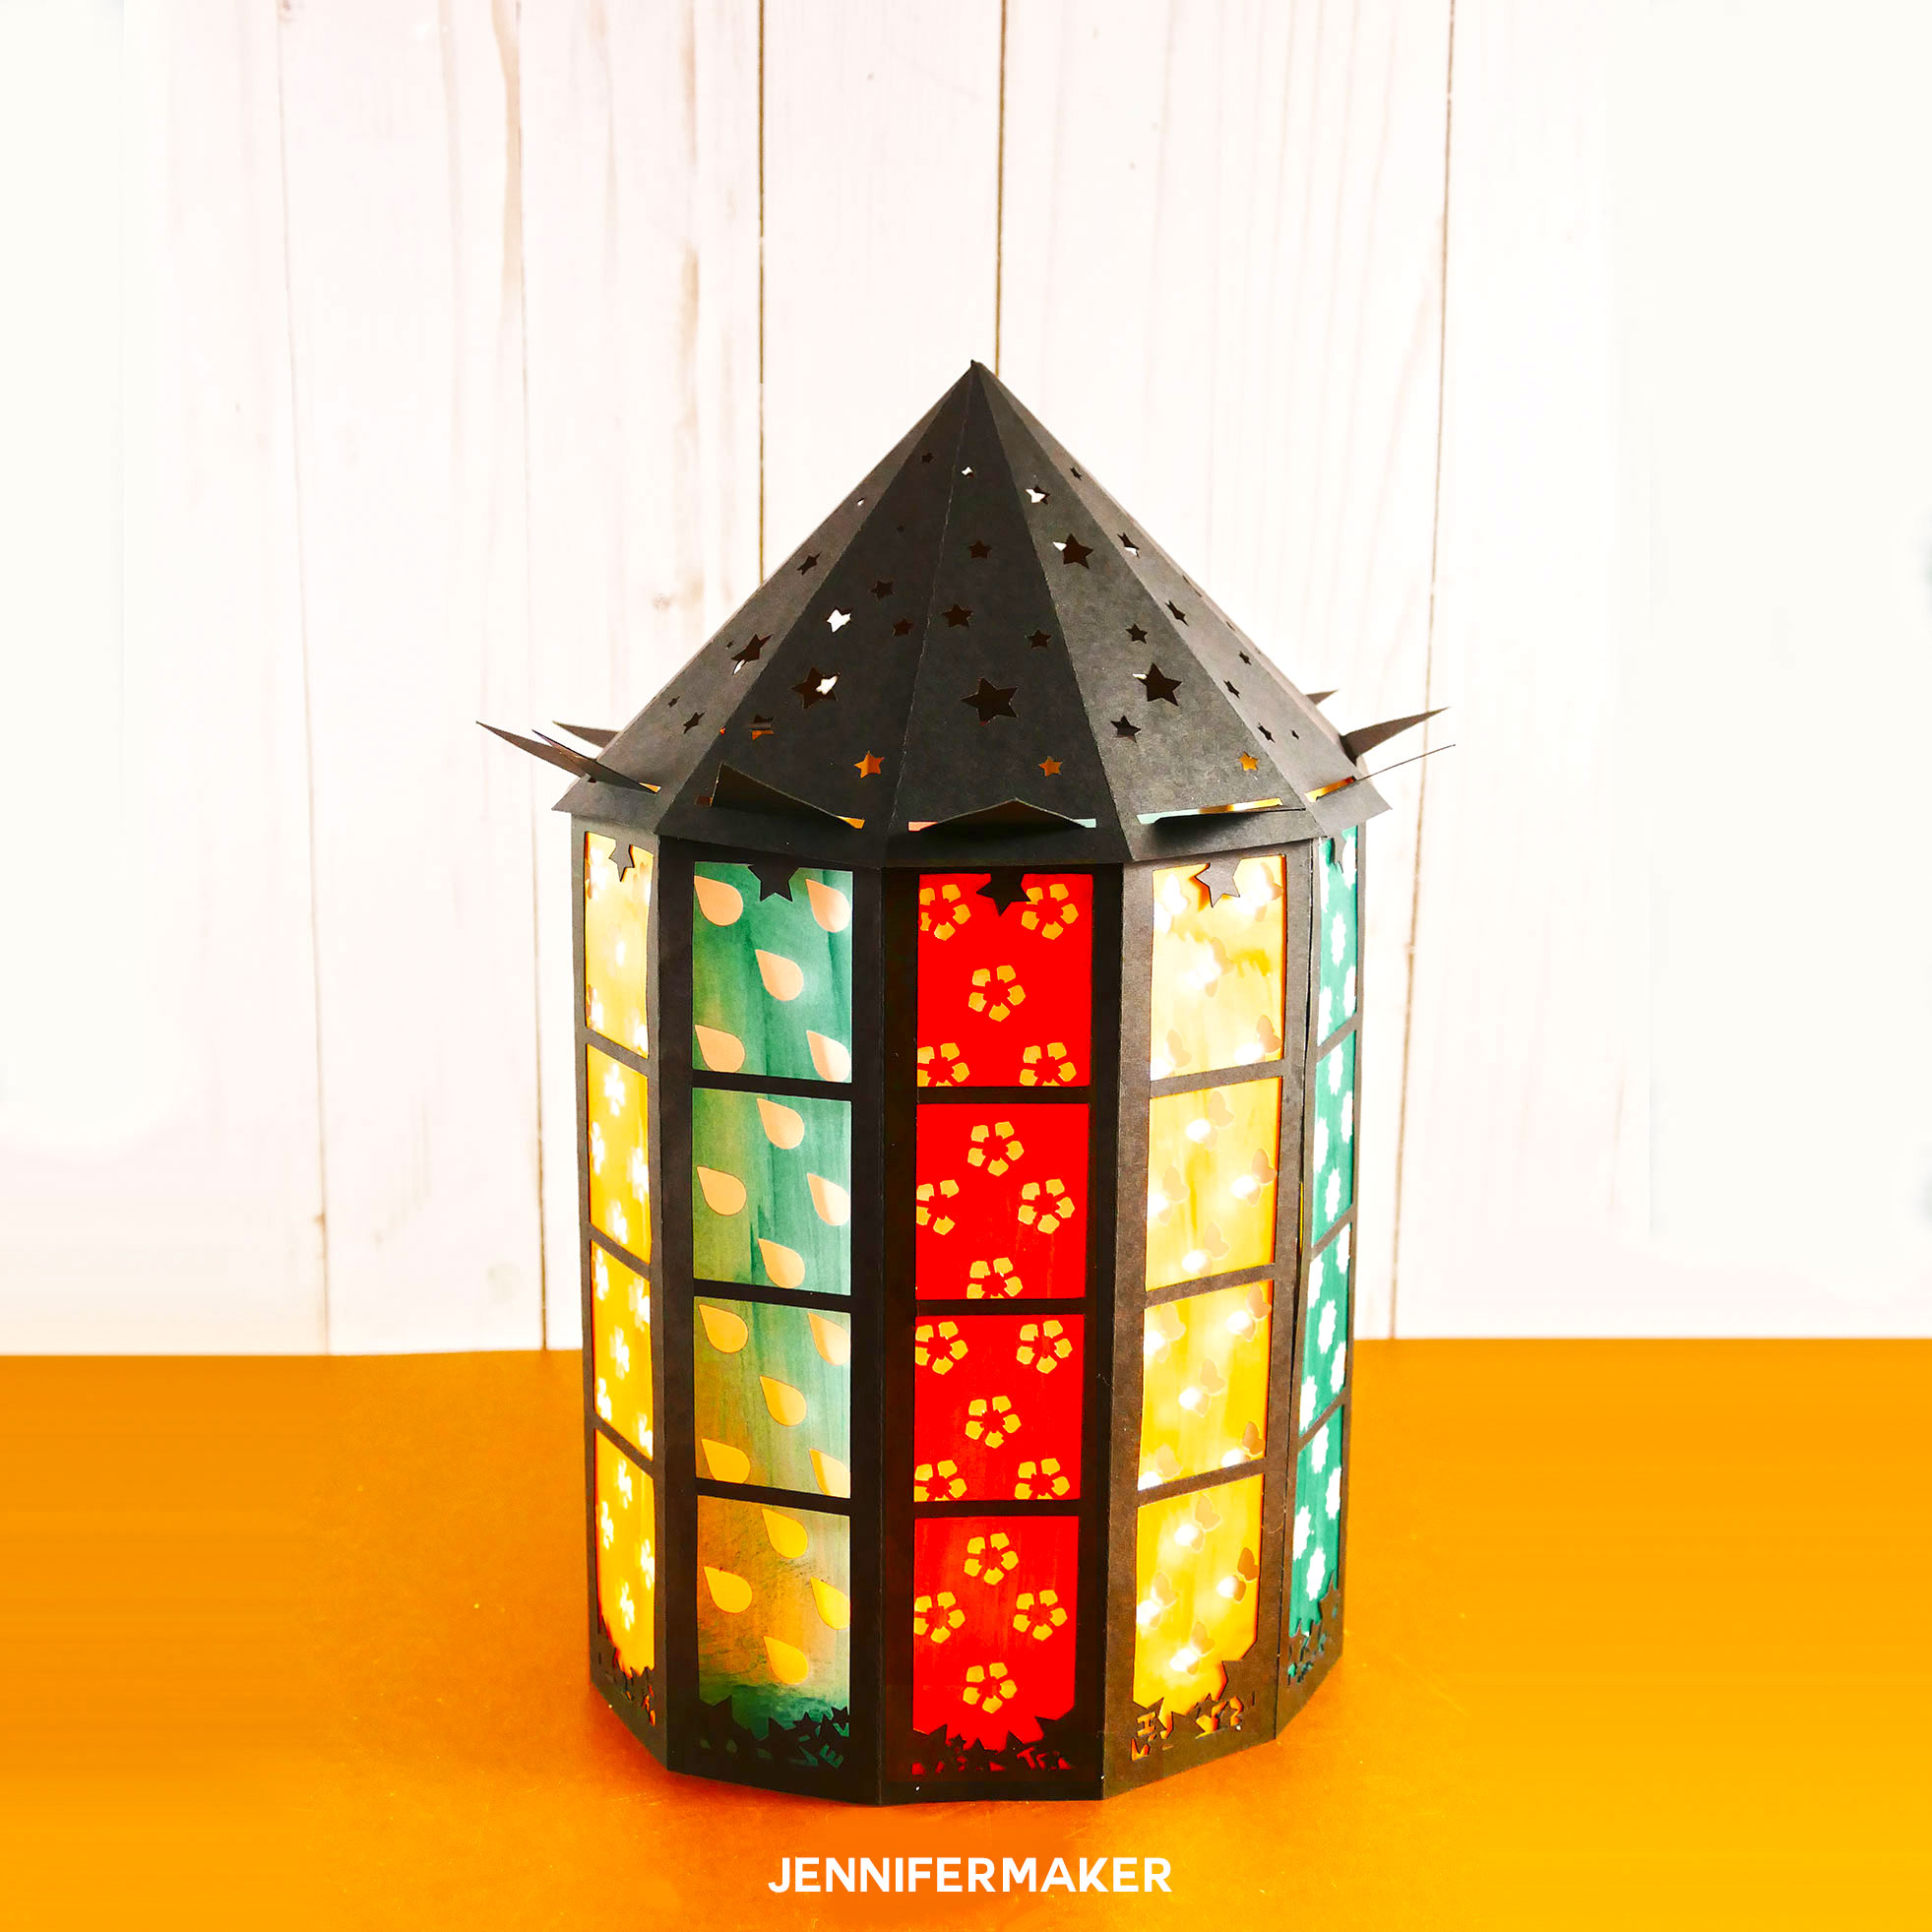 Deluxe Version of the Starlight Lantern